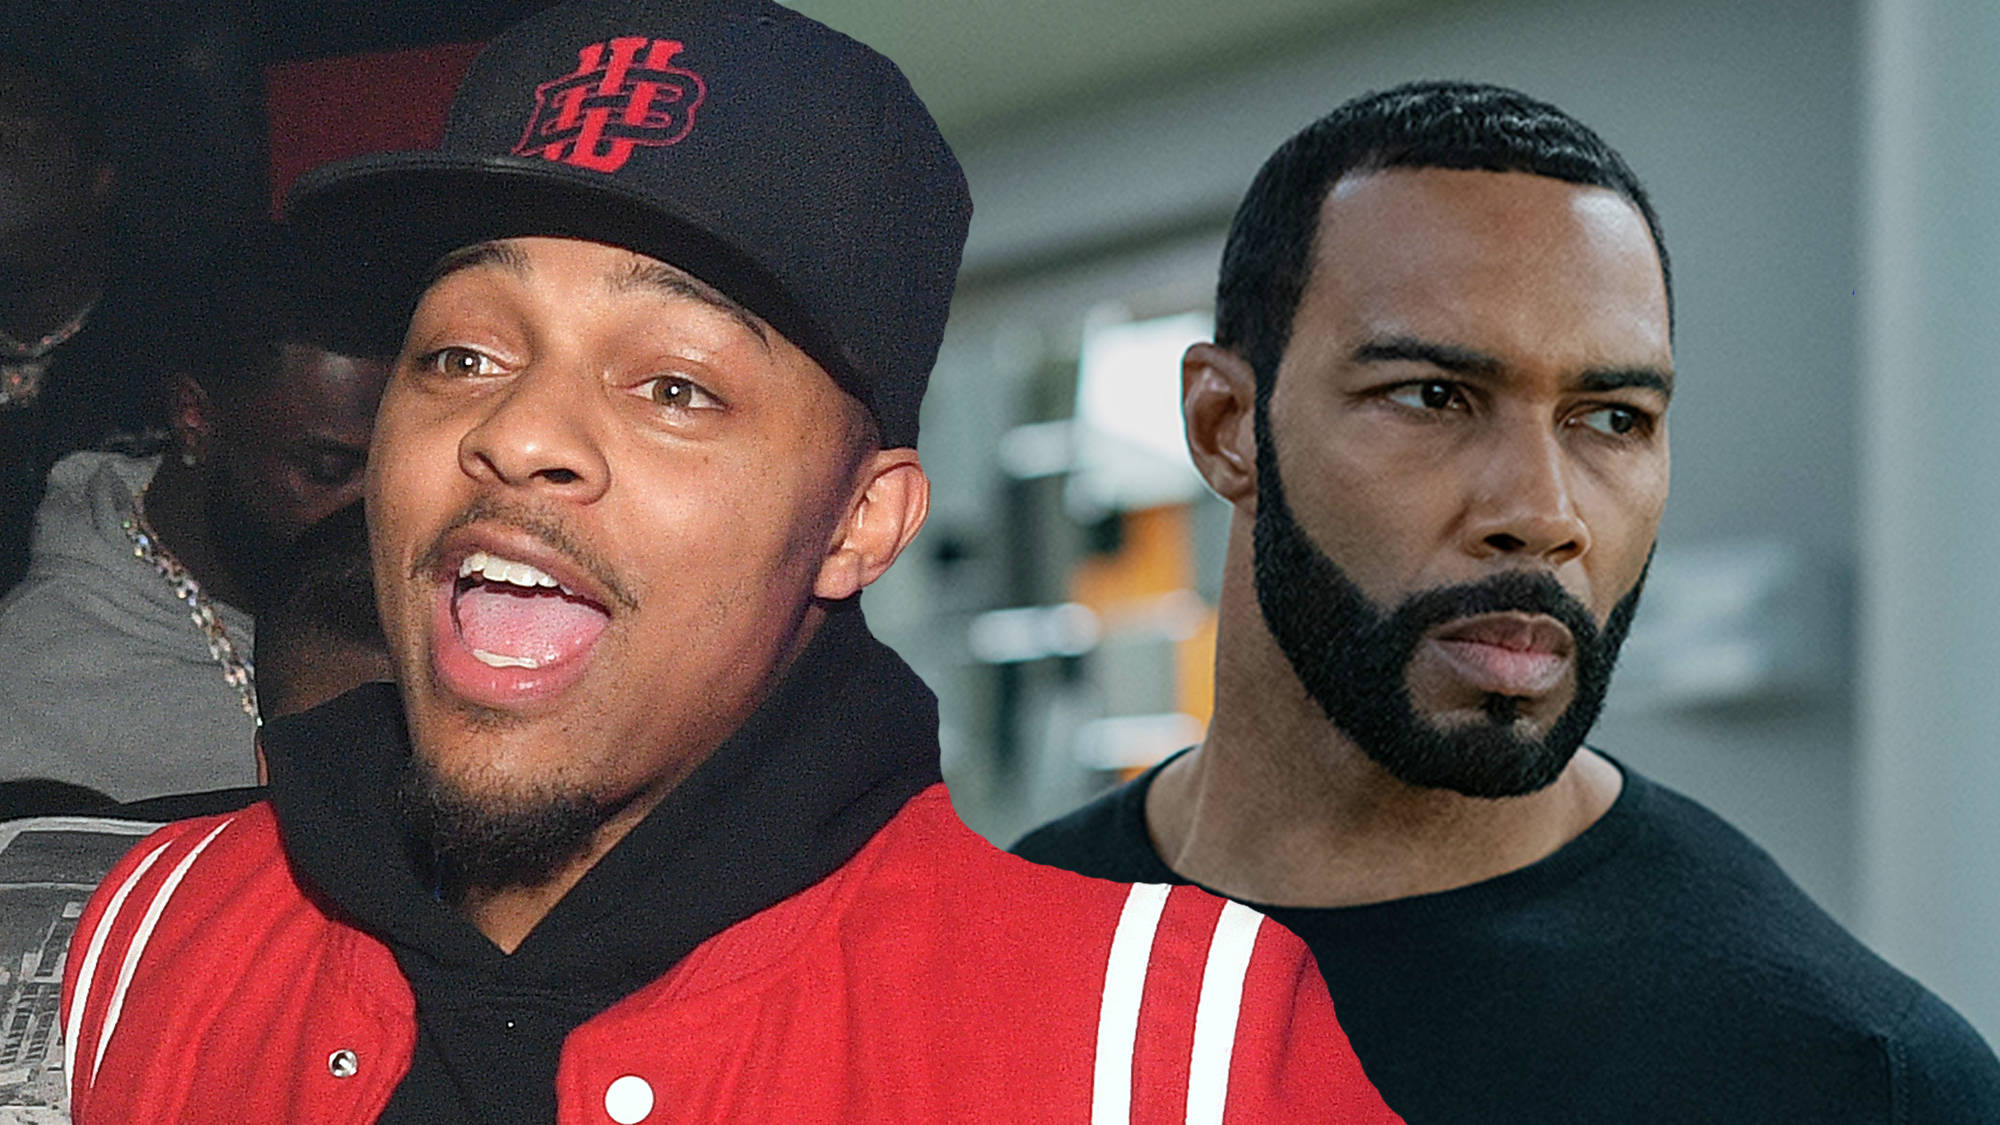 Bow Wow Shares Wild 'Power' Theory About Ghost After Latest Episode Cliffhanger